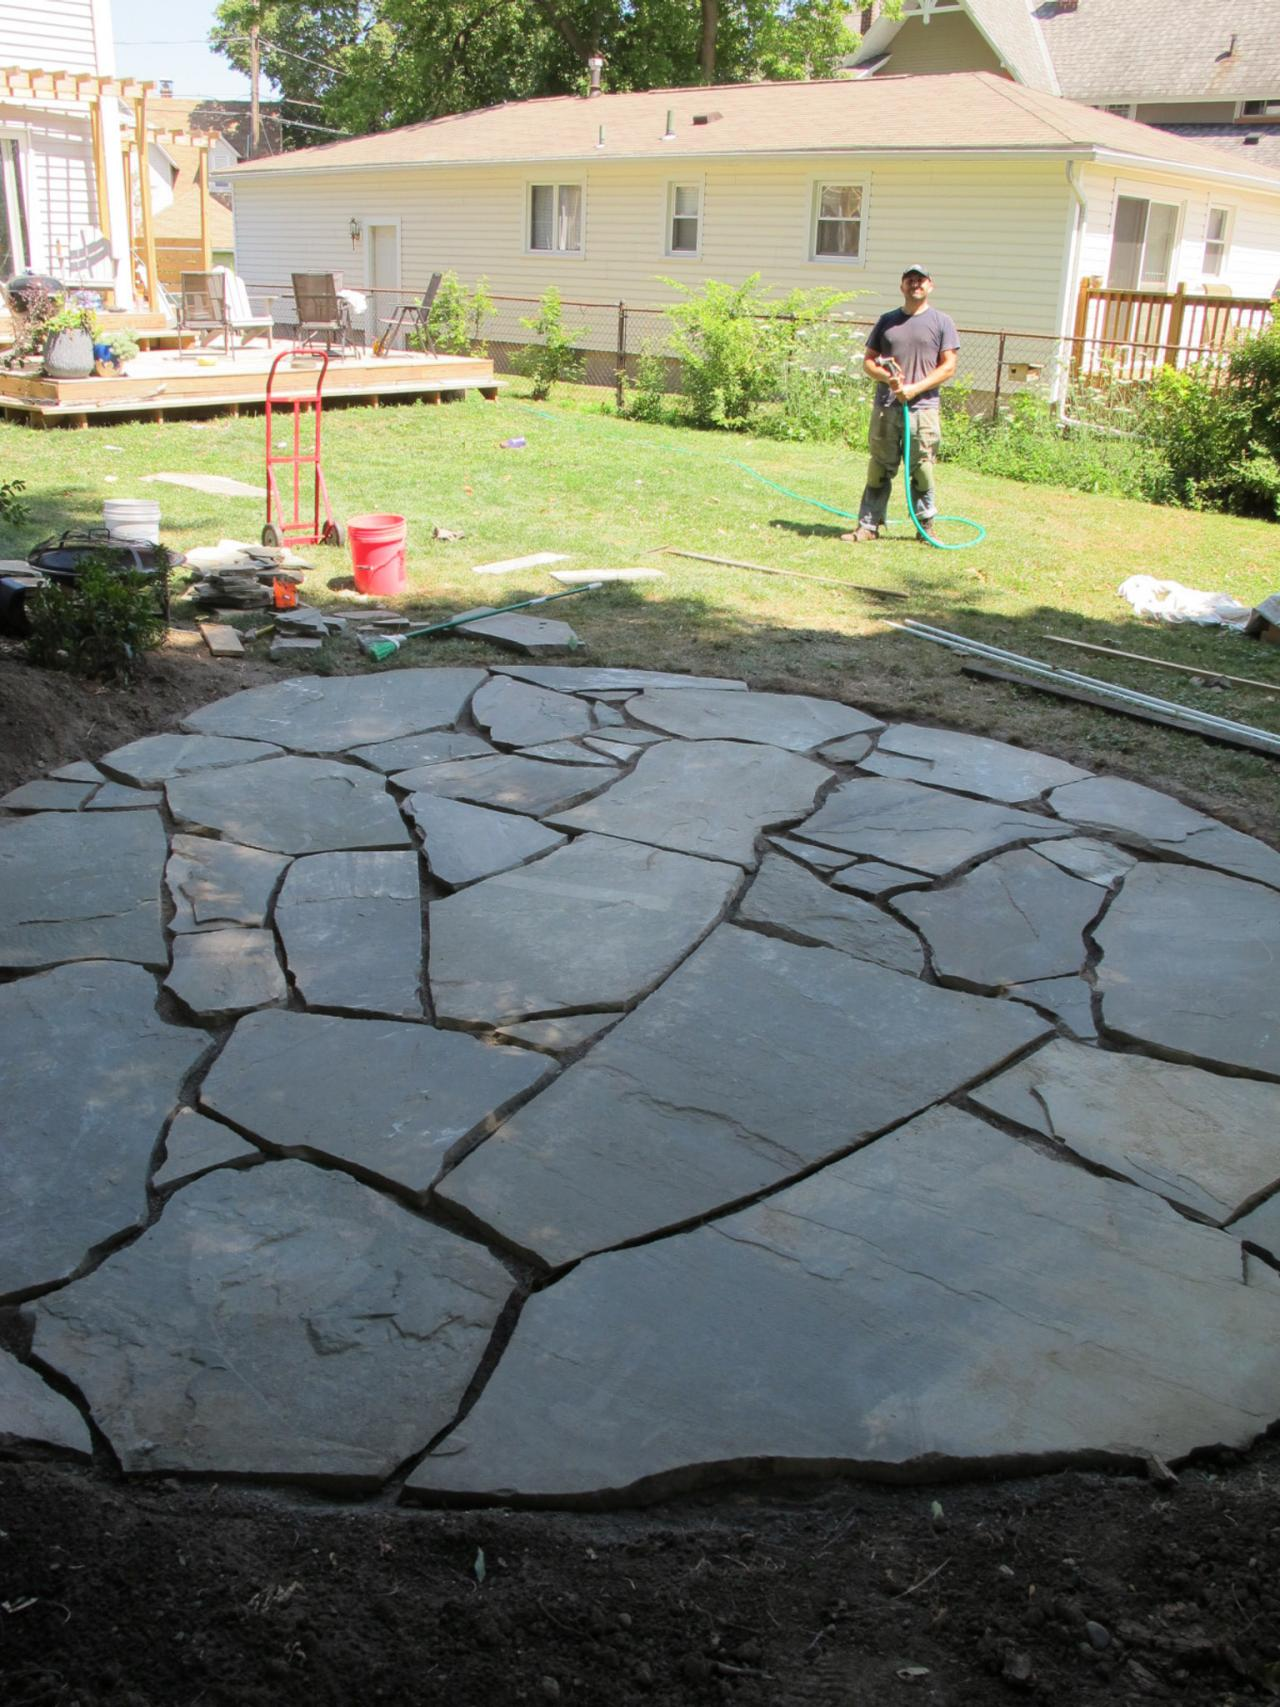 how to install a flagstone patio with irregular stones | diy network blog:  made + remade ZRWOCRZ